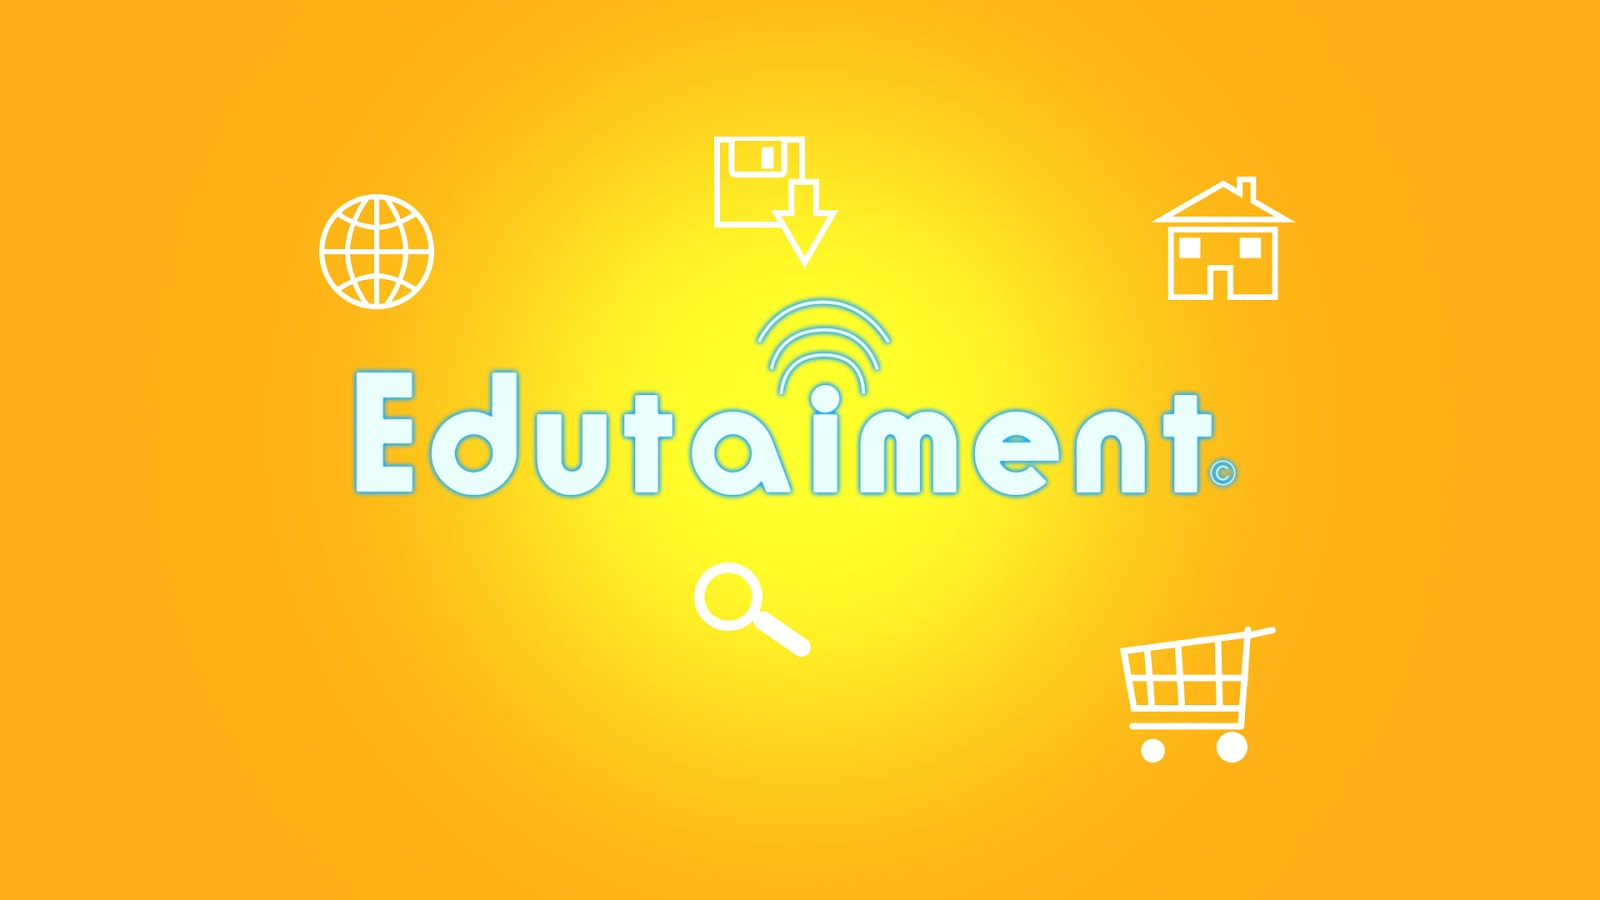 Edutaiment - Technology News